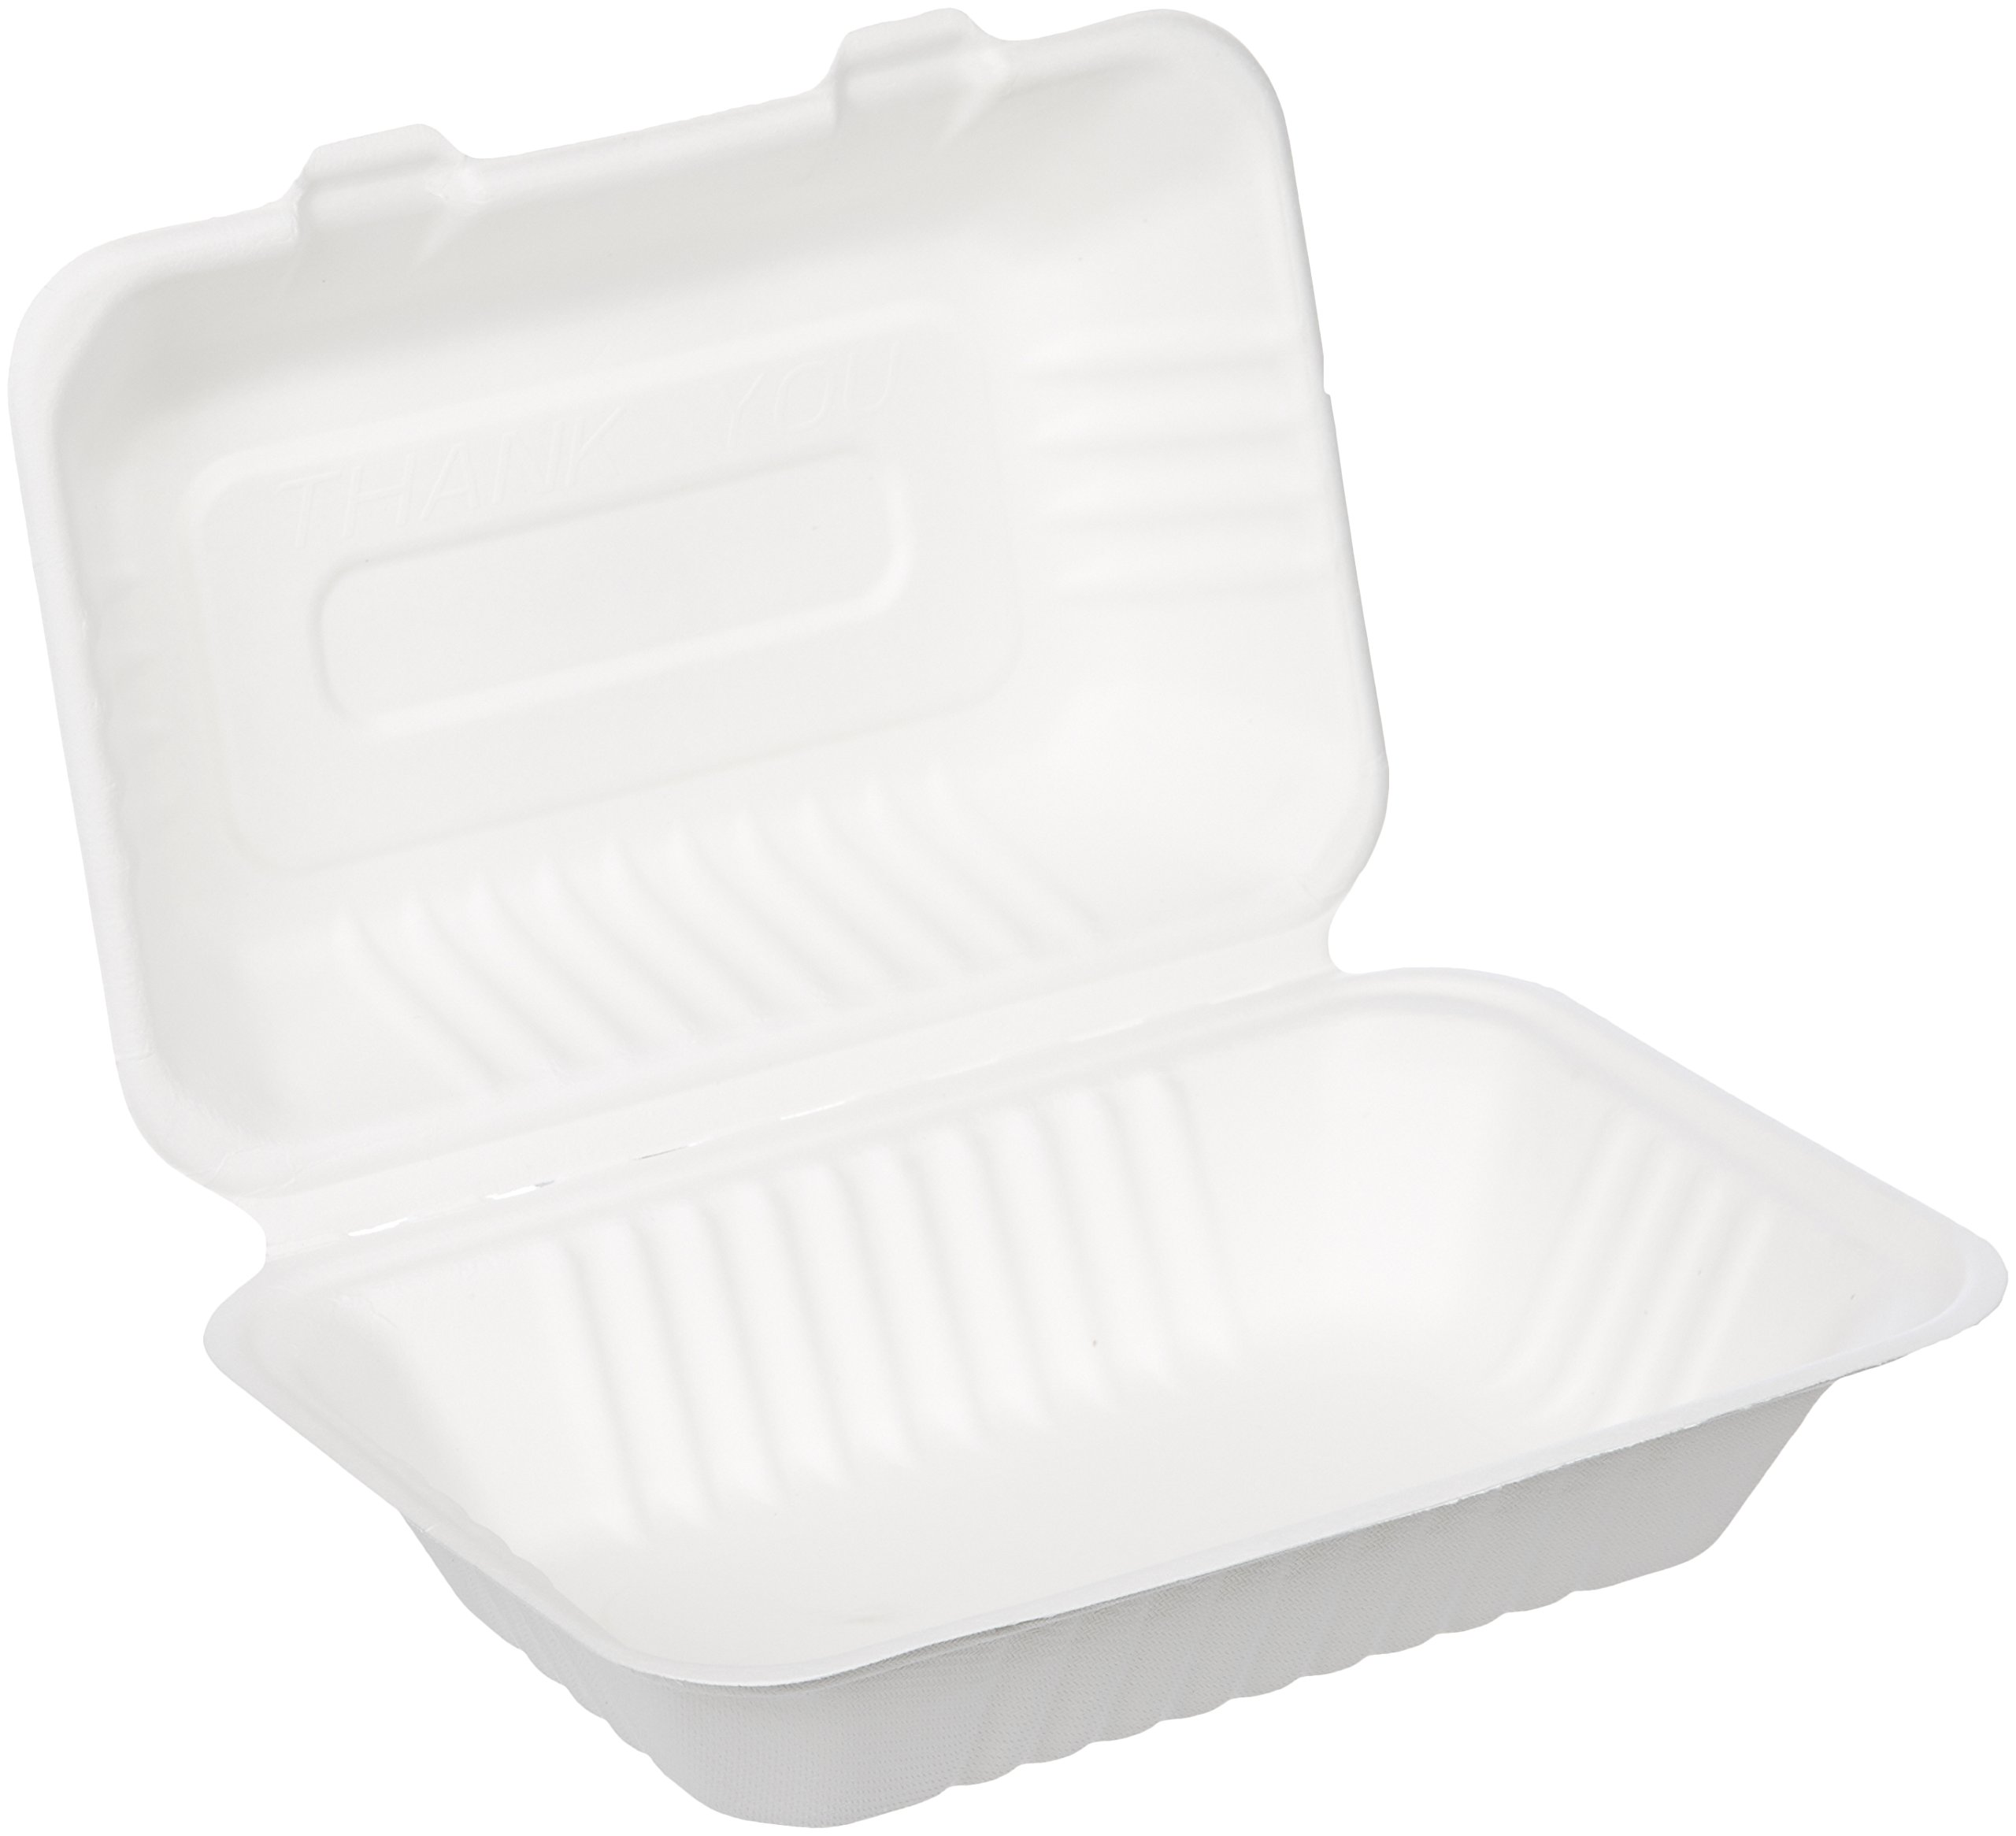 Pack of 300 eco Kloud 8 inch Bagasse Sugarcane Fiber Hinged Container 3-Compartment